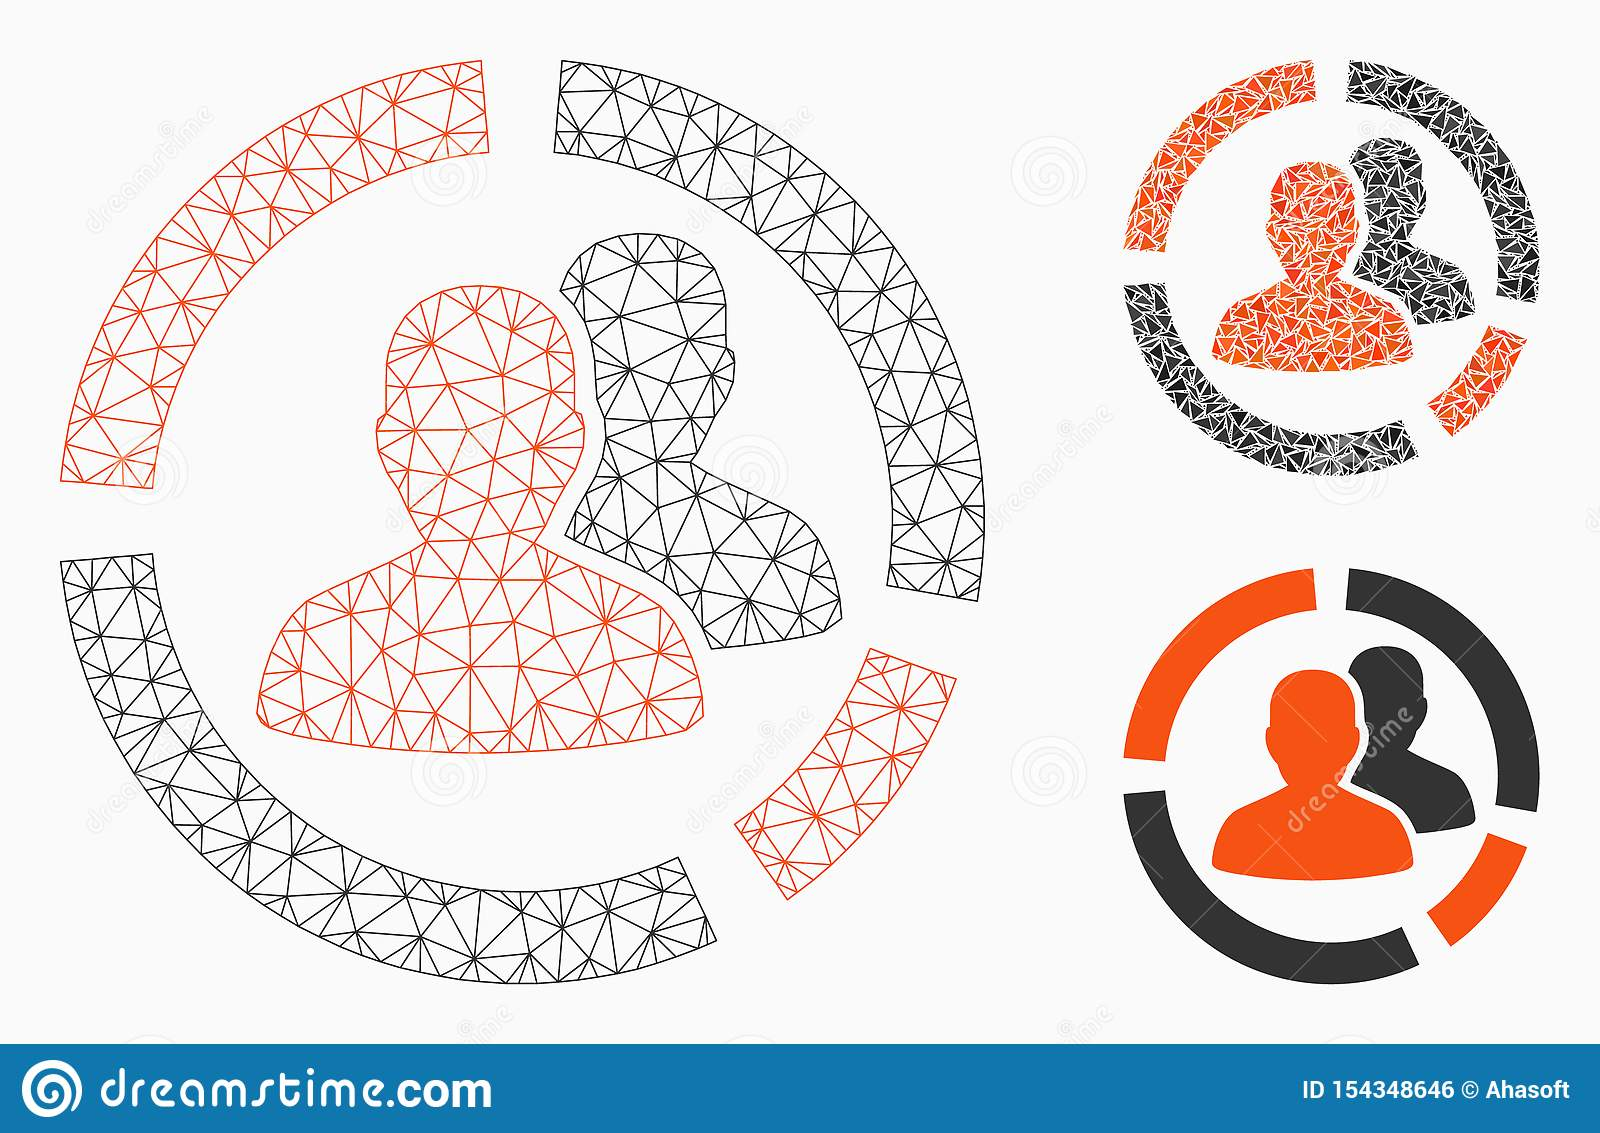 Patient Diagram Vector Mesh Wire Frame Model And Triangle Mosaic Icon Stock Vector